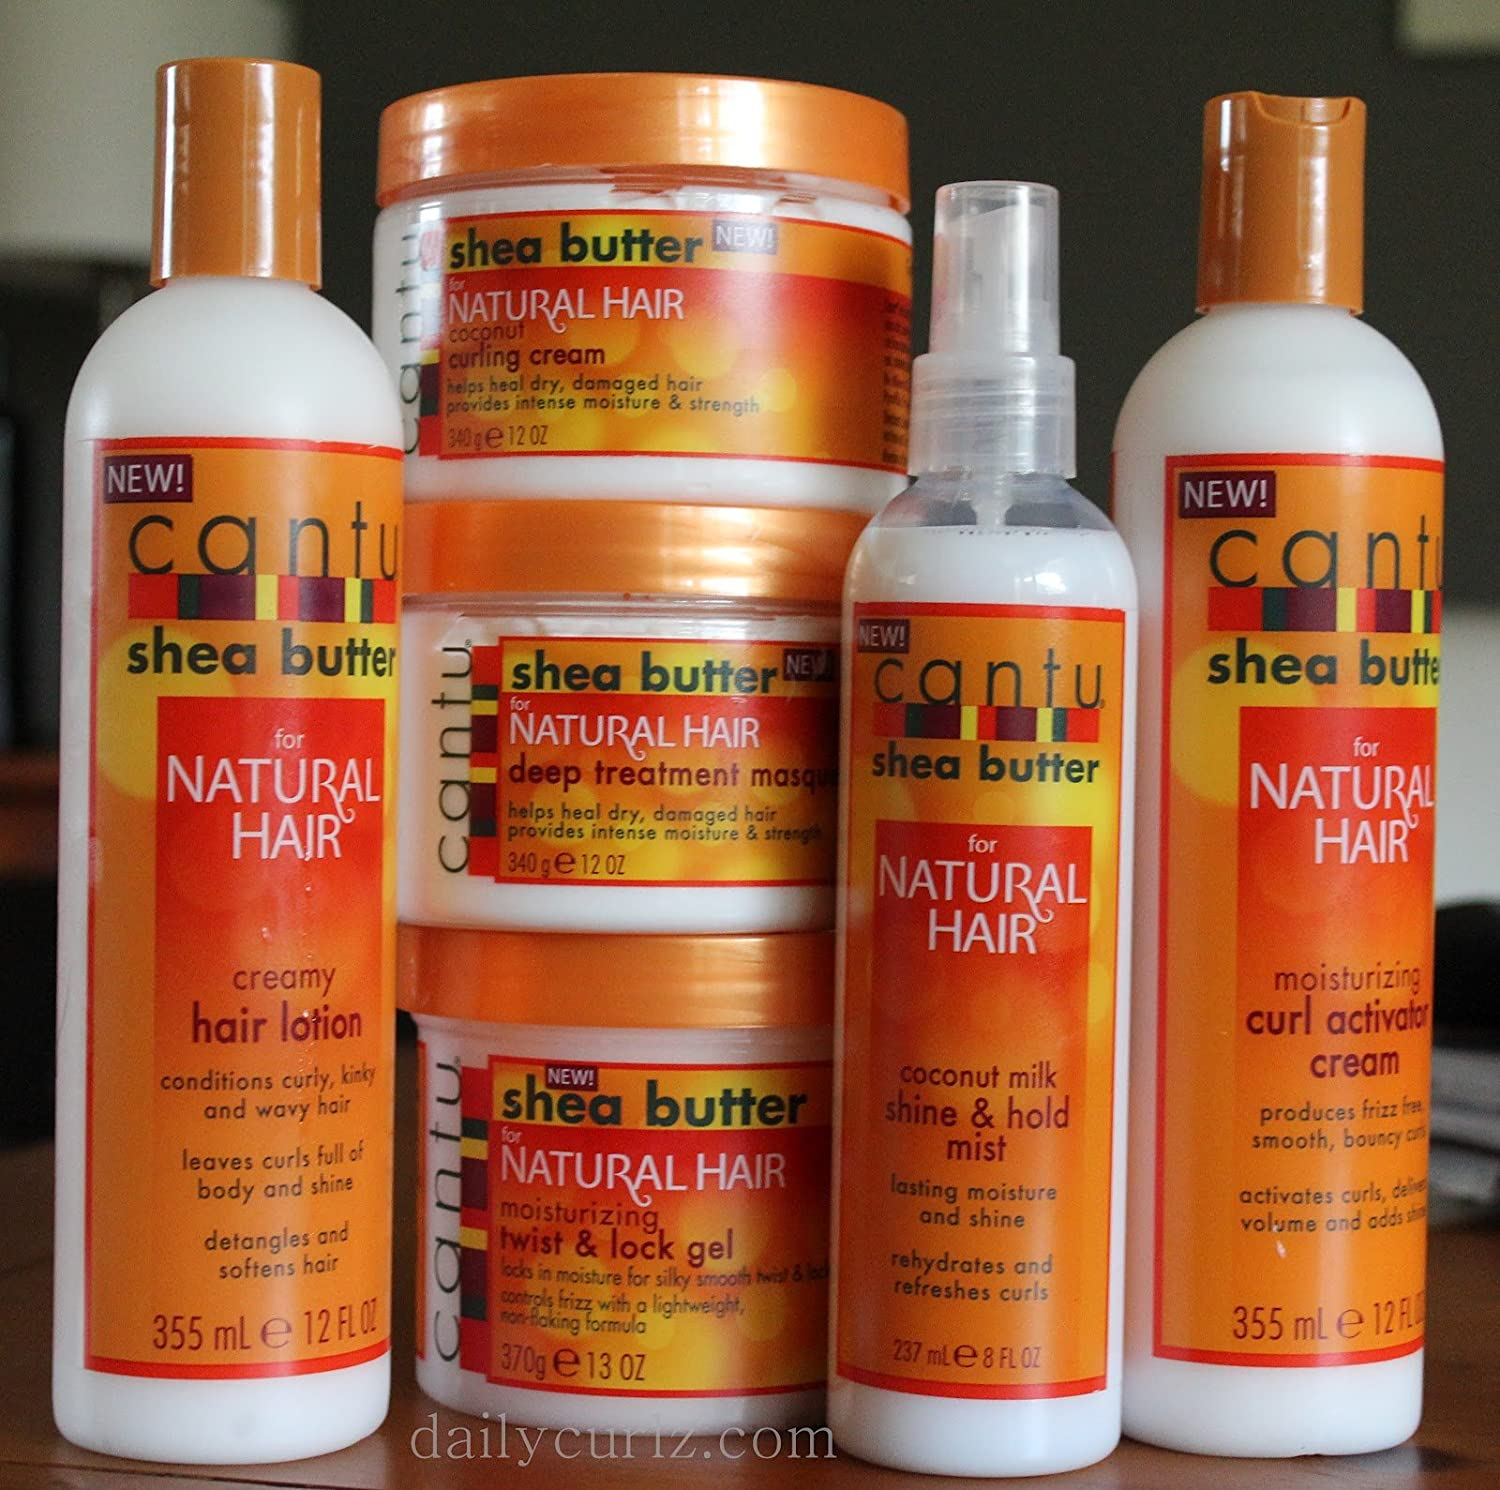 The best curl cream for natural hair